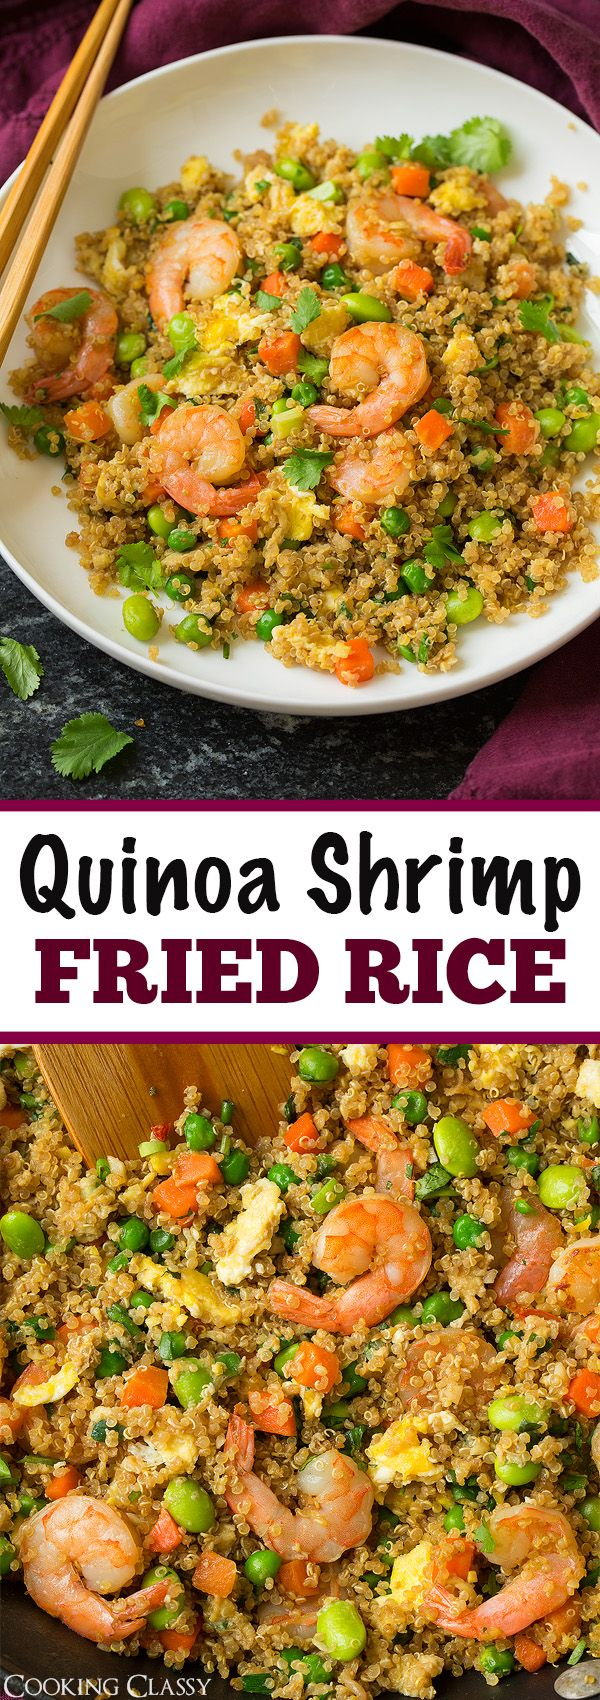 """Quinoa Shrimp """"Fried Rice"""" - a healthier take on classic fried rice yet equally as delicious!"""